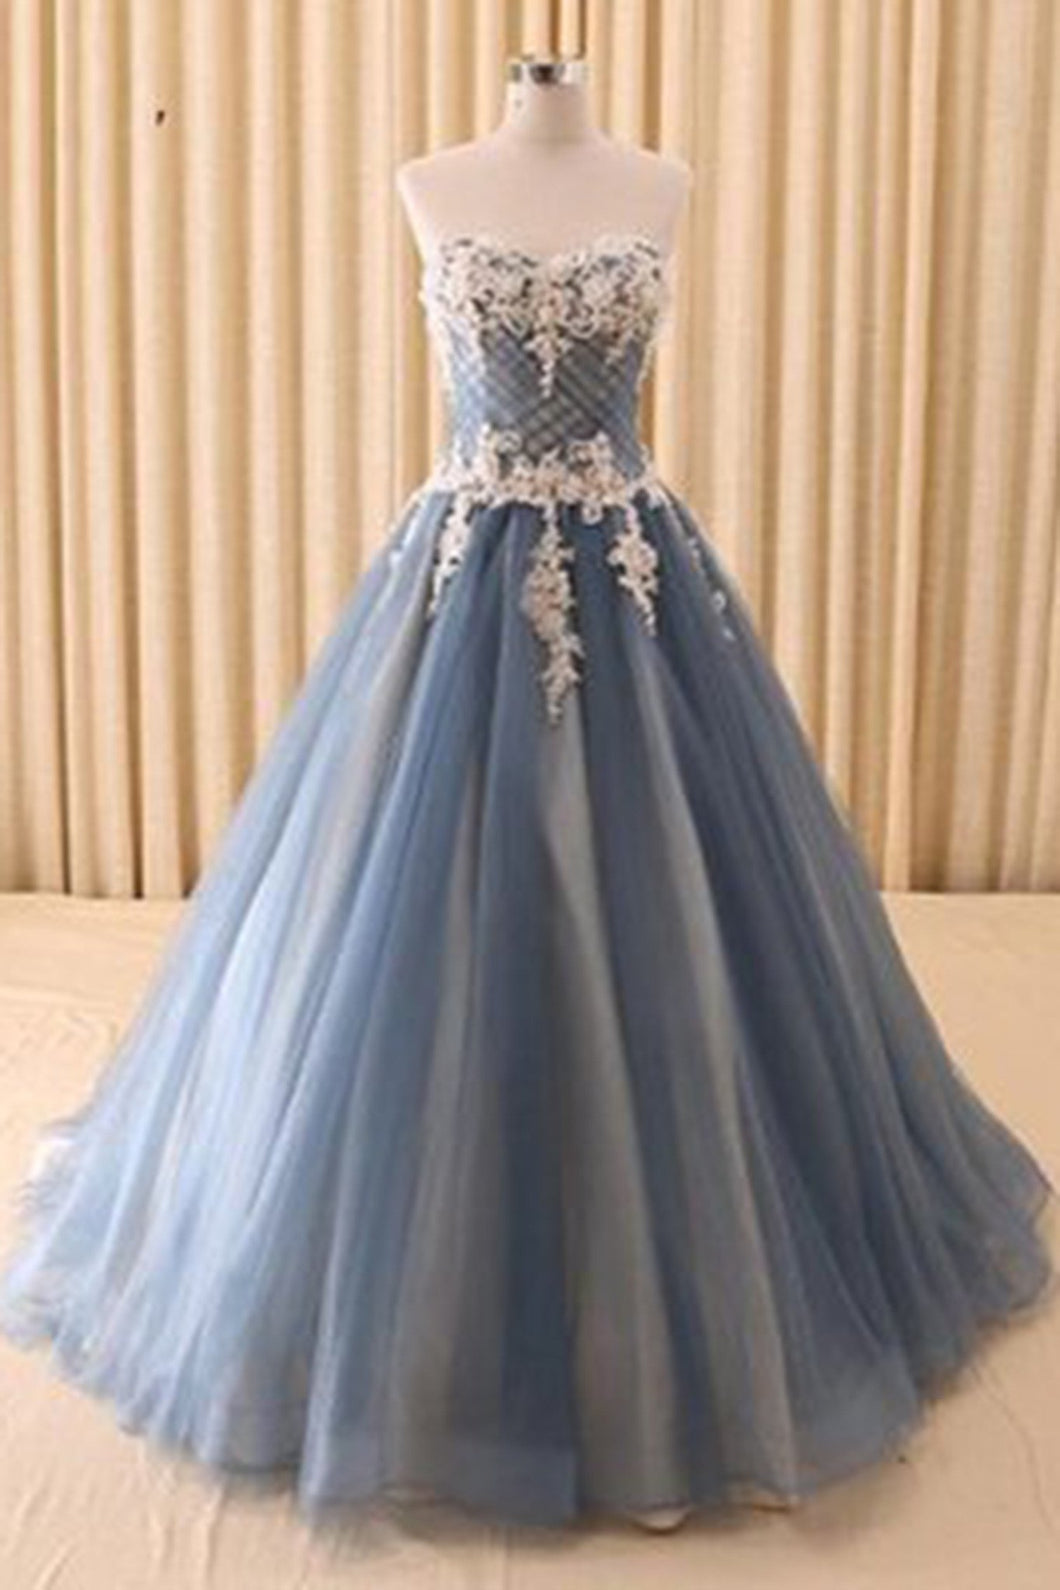 2019 Prom Dresses | Beautiful gray organza lace applique sweetheart  A-line bridesmaid long dress,wedding dress